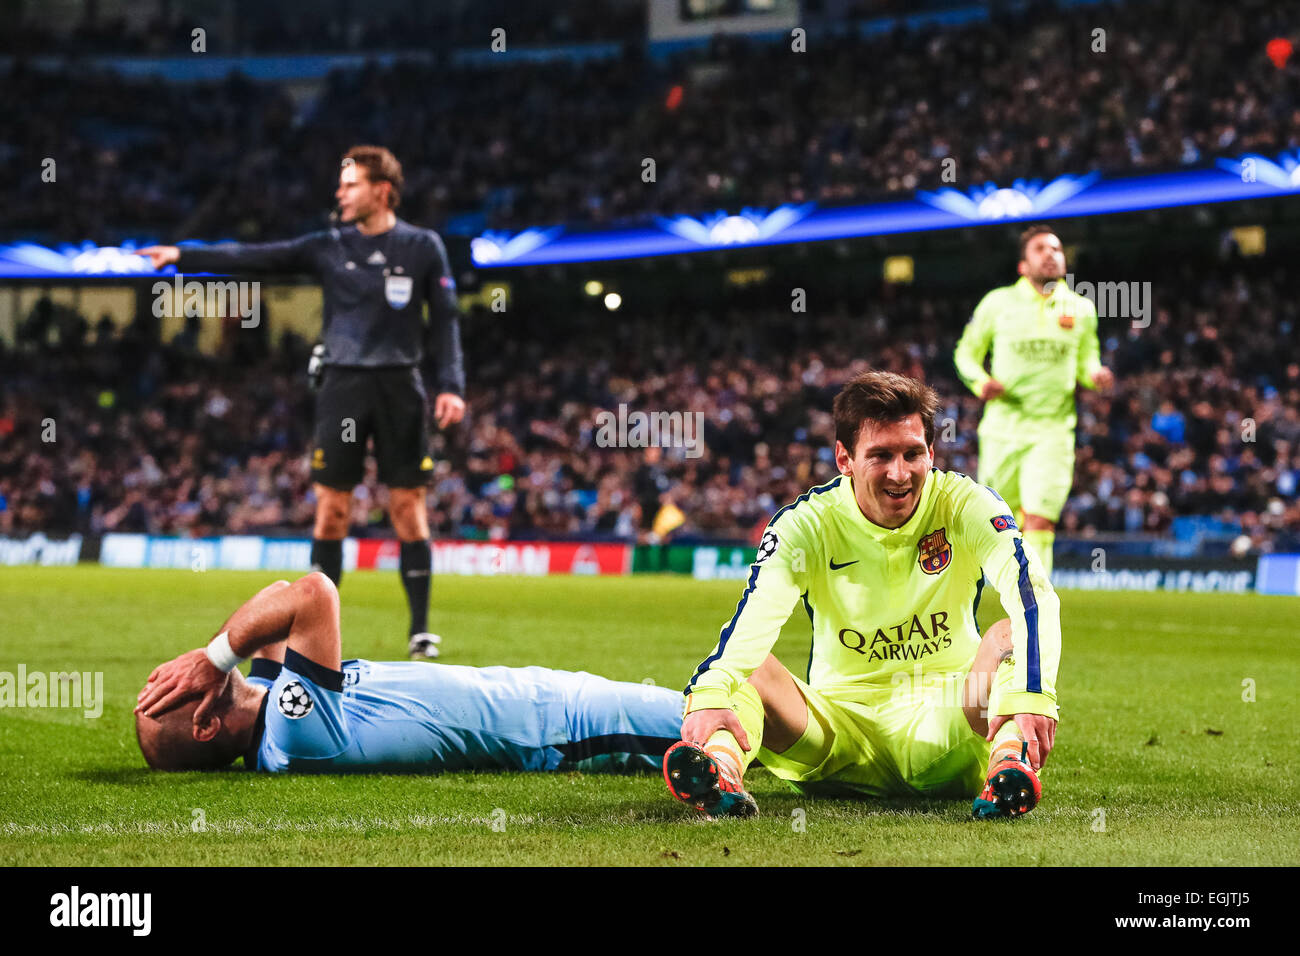 Manchester UK 24th Feb 2015 Lionel Messi Barcelona Pablo